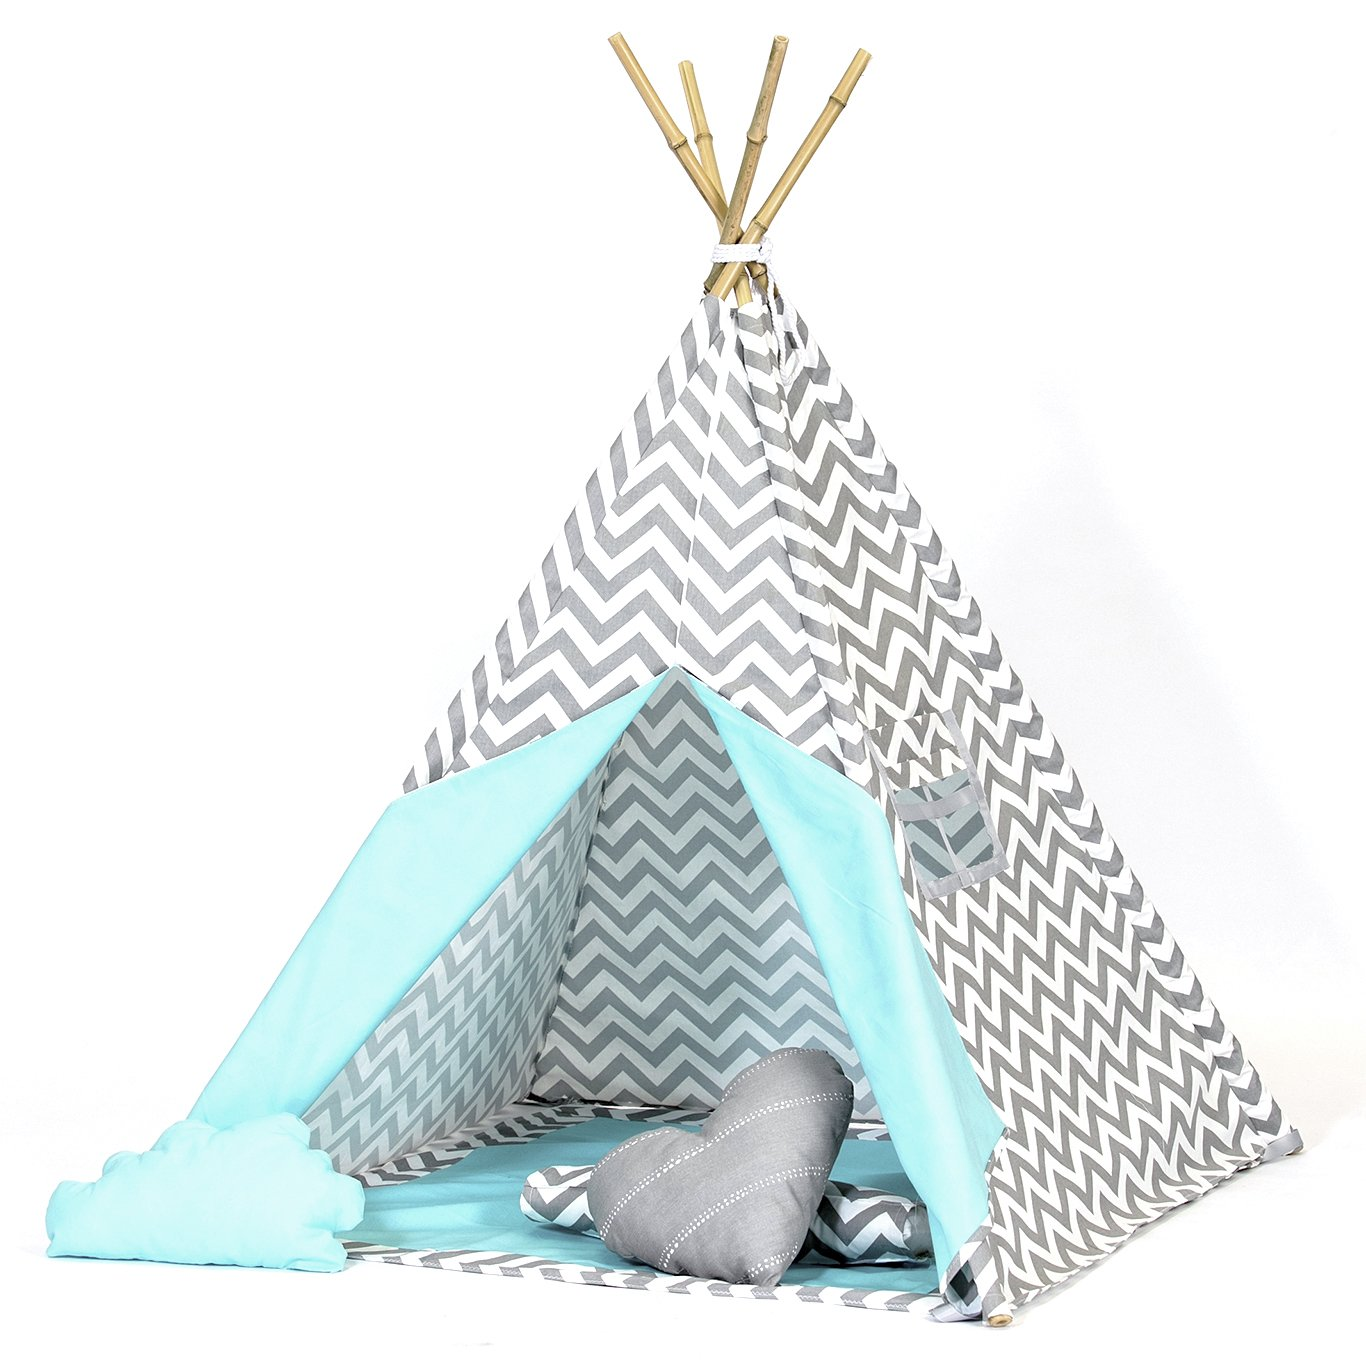 tipi en f te des f tes d 39 enfants adorables fait avec amour et passion. Black Bedroom Furniture Sets. Home Design Ideas